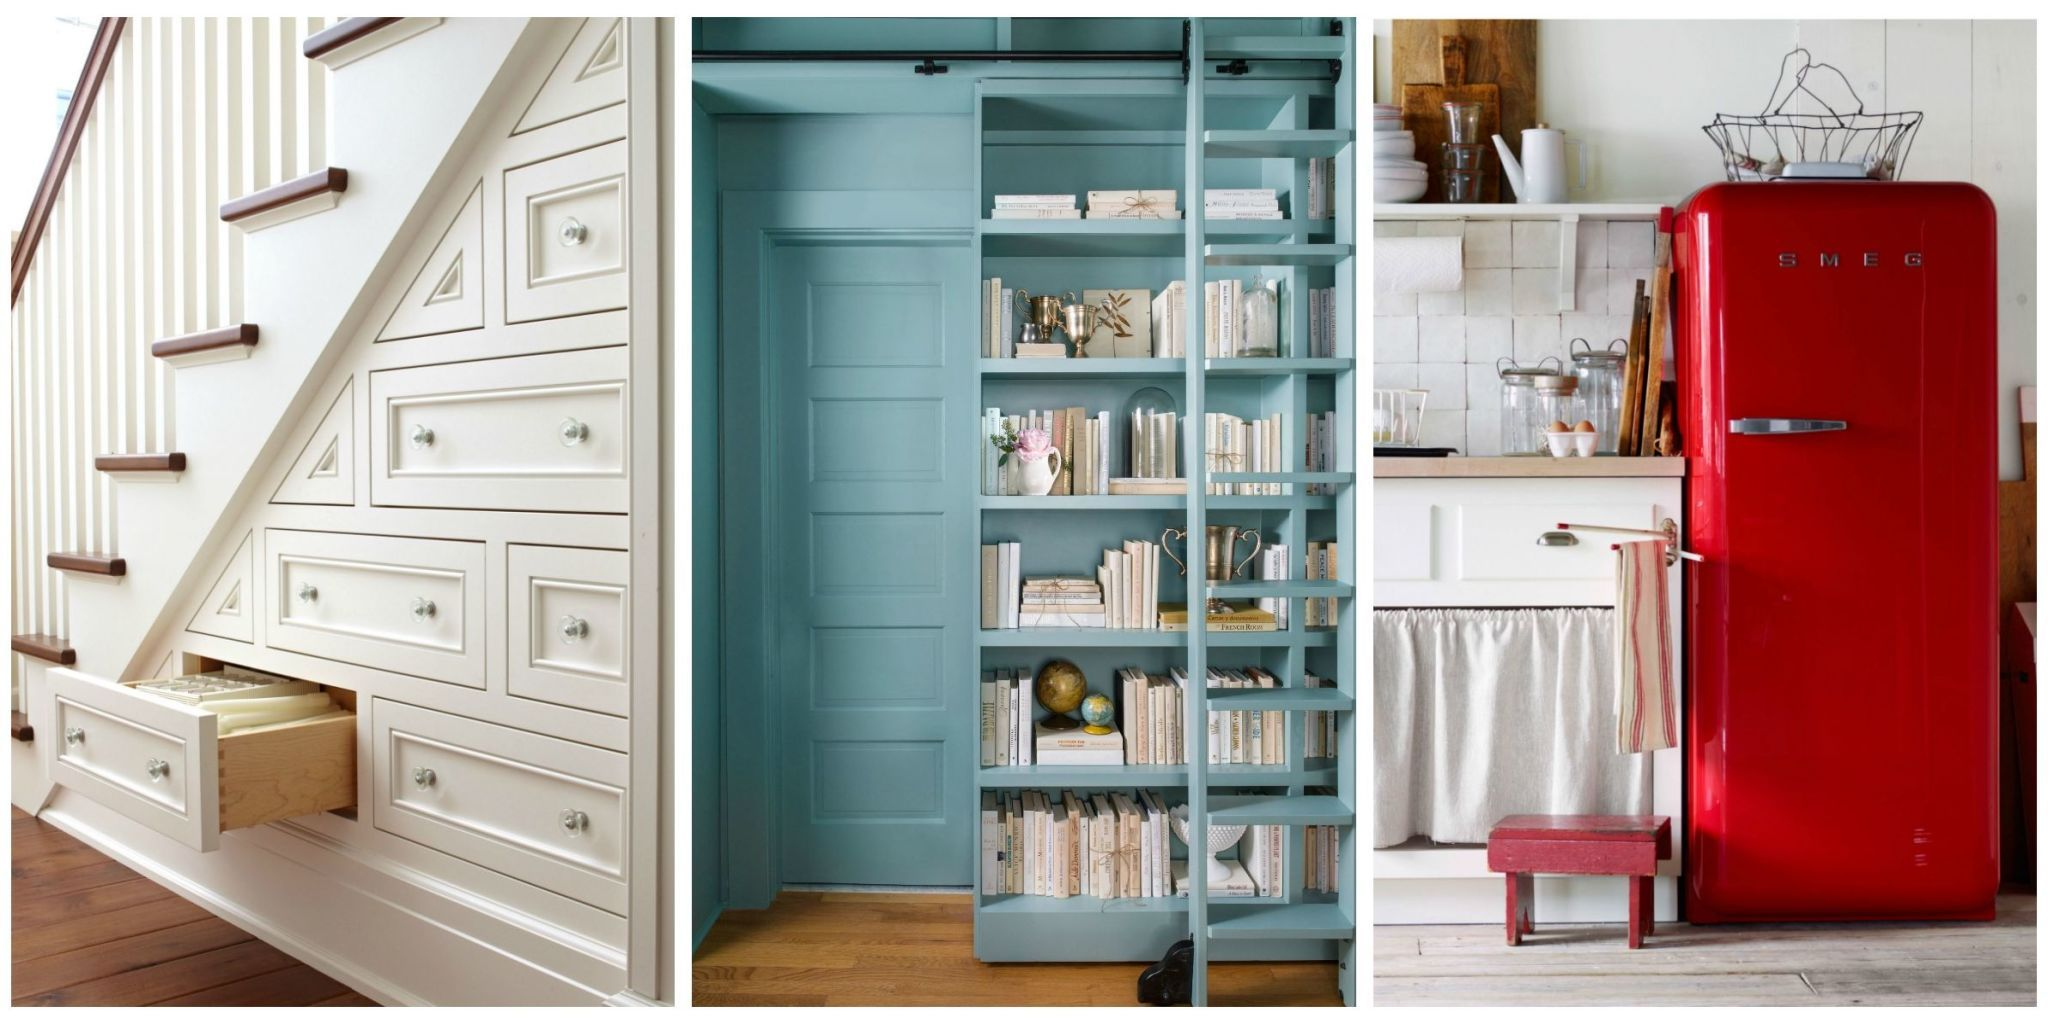 17 small space decorating ideas \u2013 organization for small roomsthese small space decorating ideas, storage solutions, and smart finds will help you maximize each square foot, regardless of the size of your house